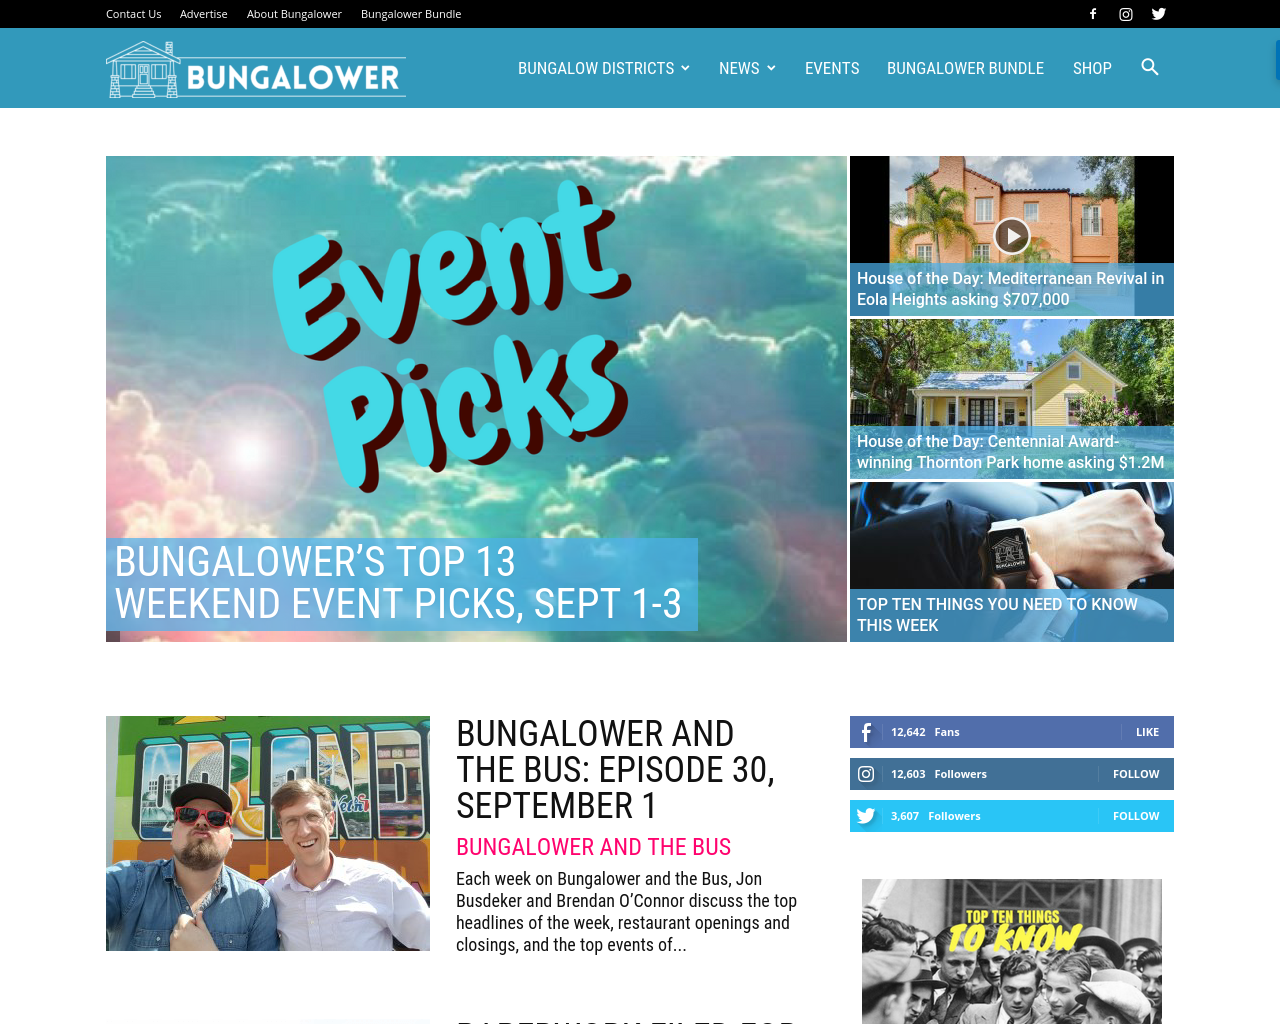 Bungalower-Advertising-Reviews-Pricing